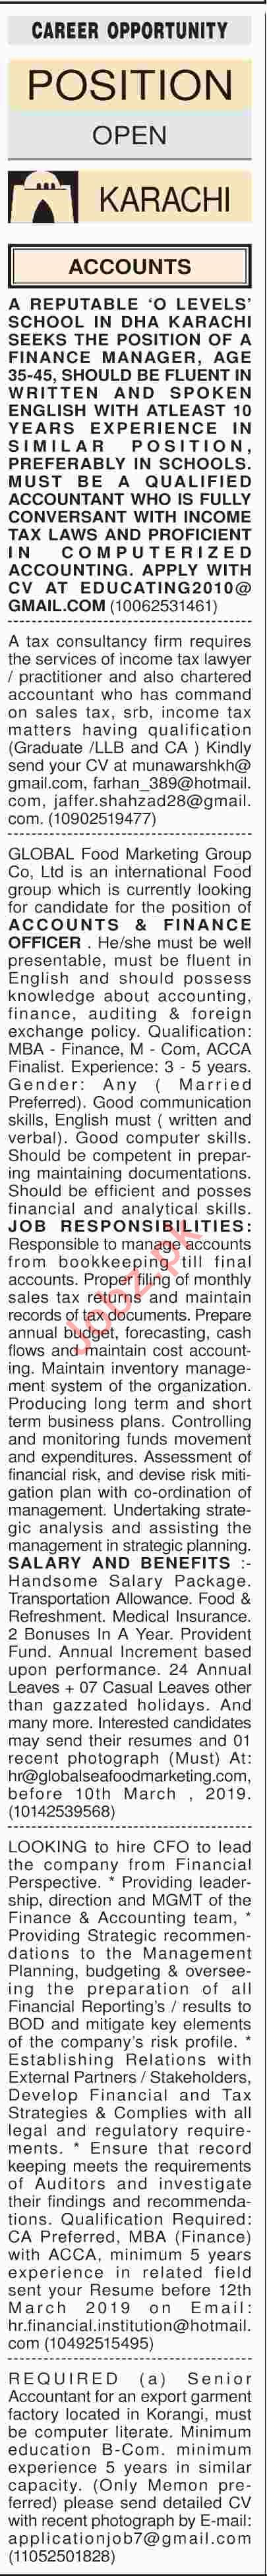 Dawn Sunday Classified Ads 3rd March 2019 Accounts Staff